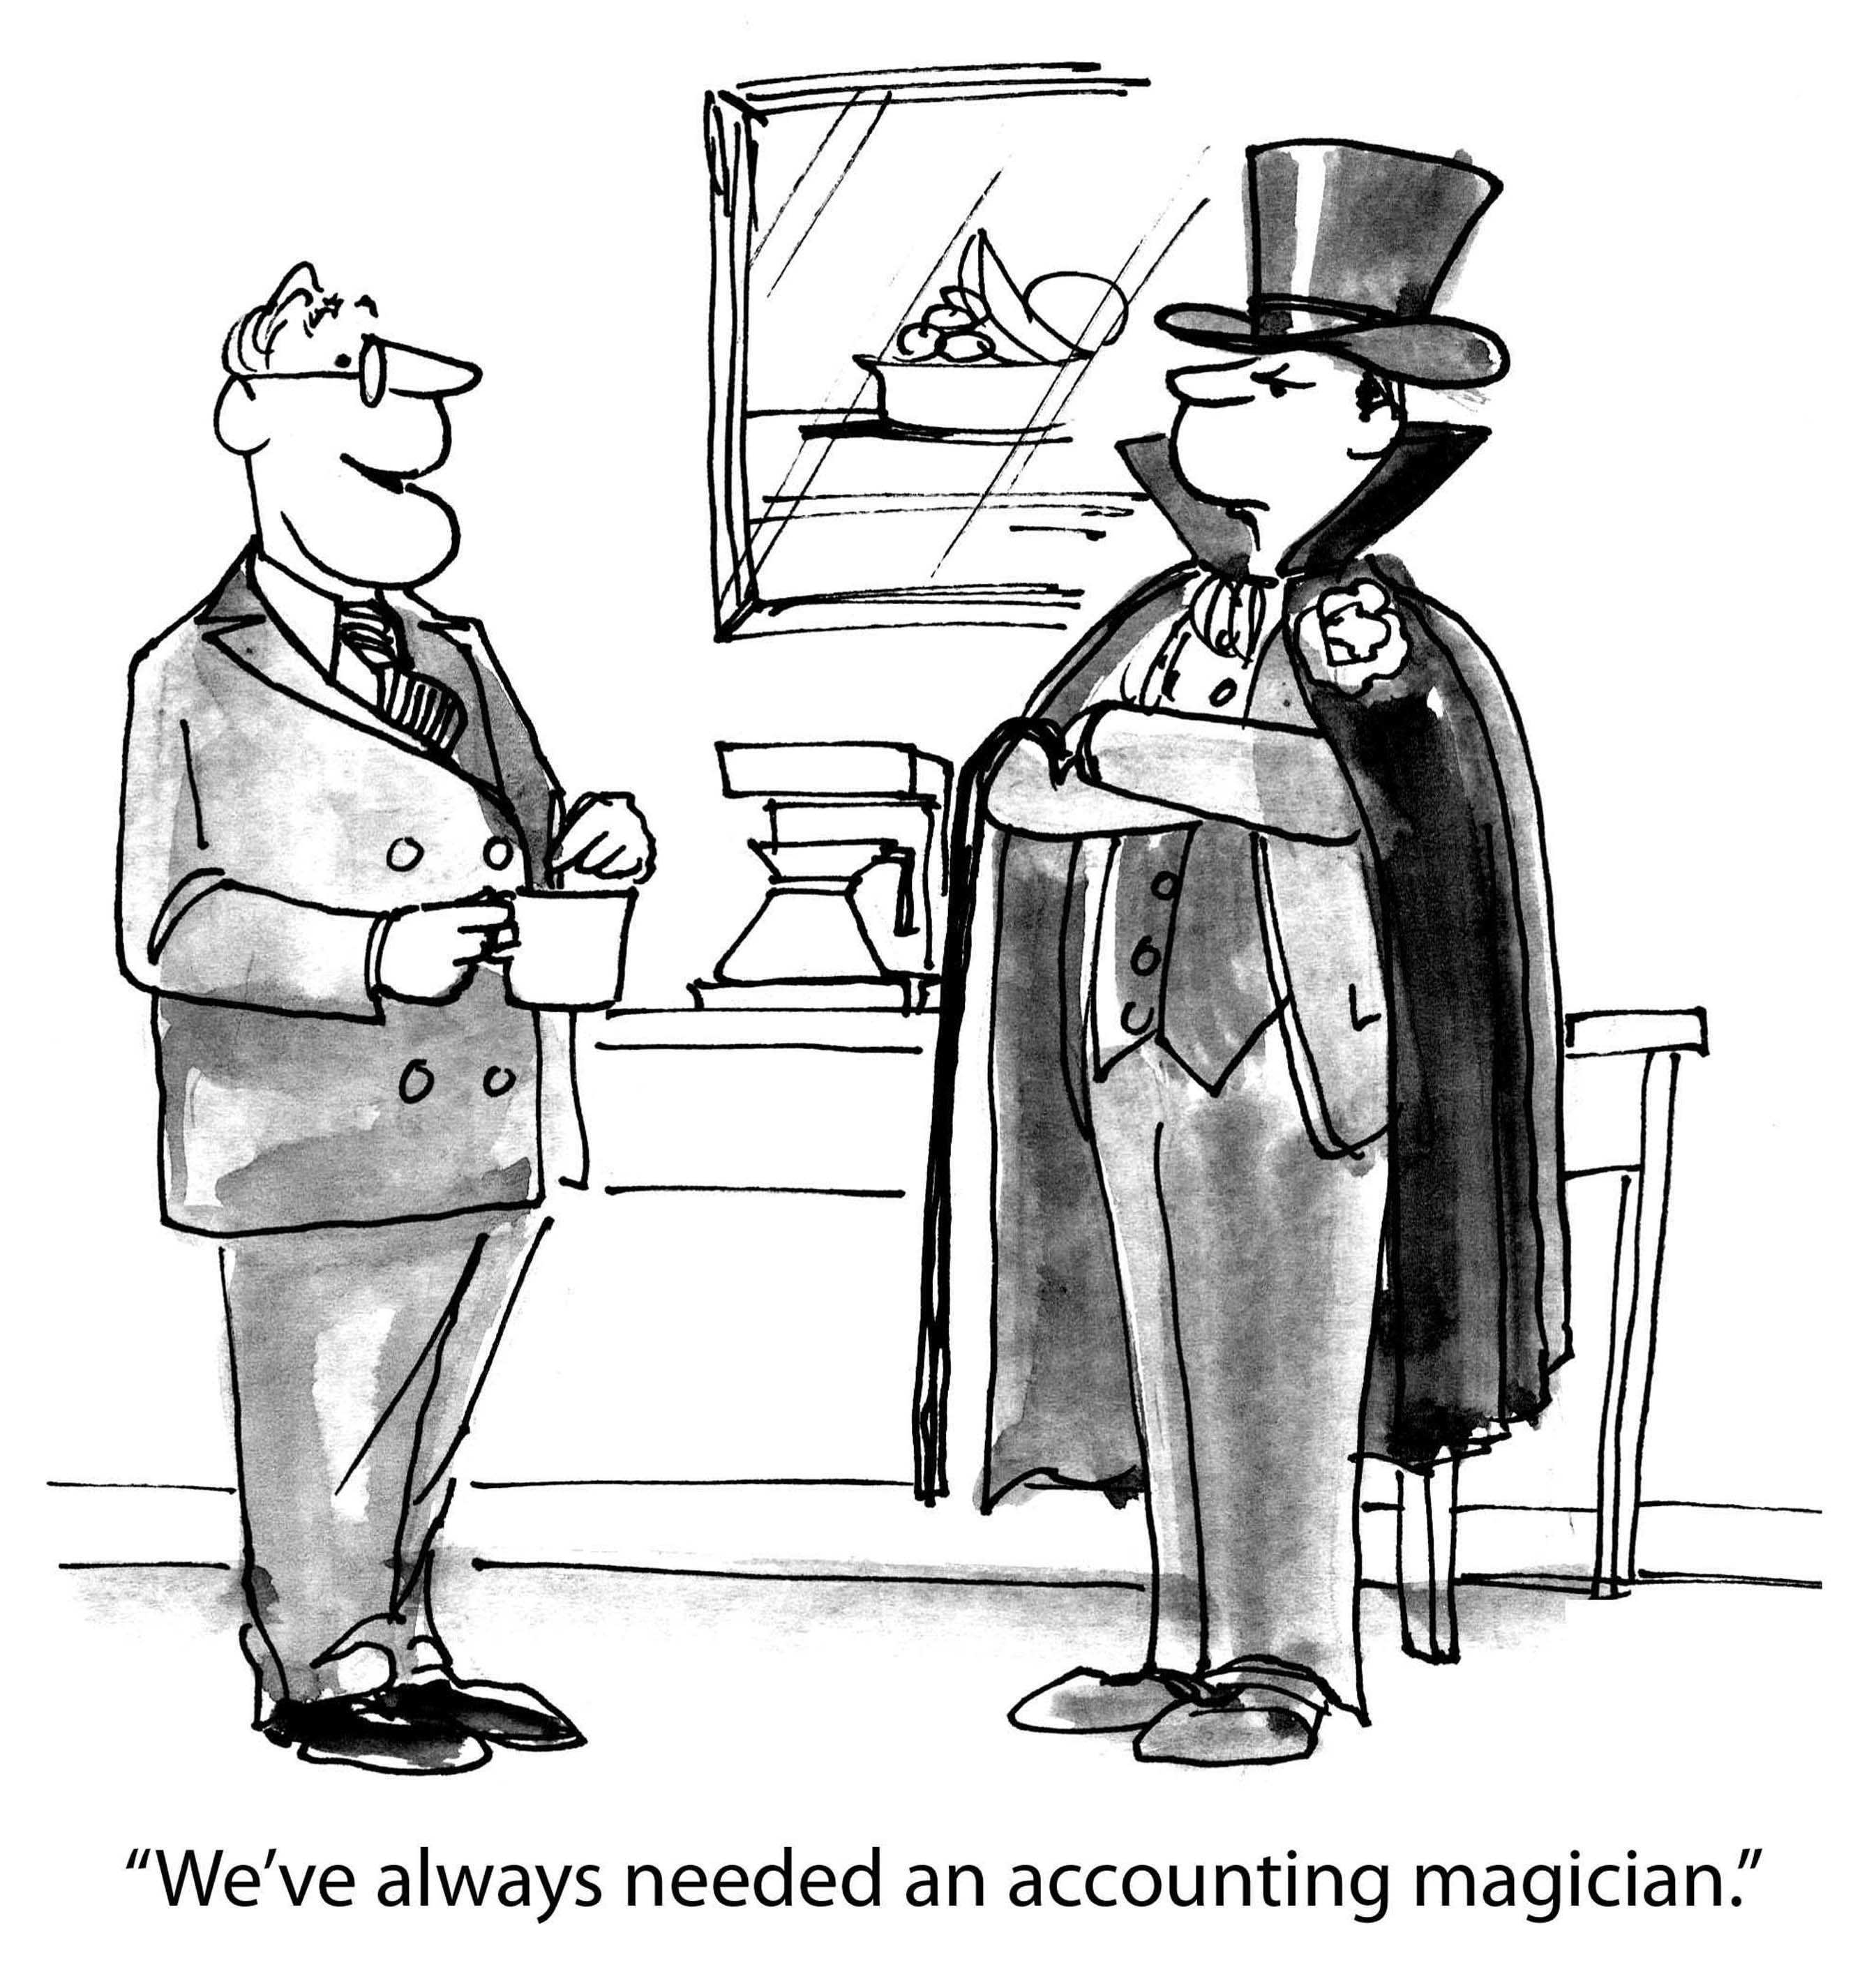 Accounting magician